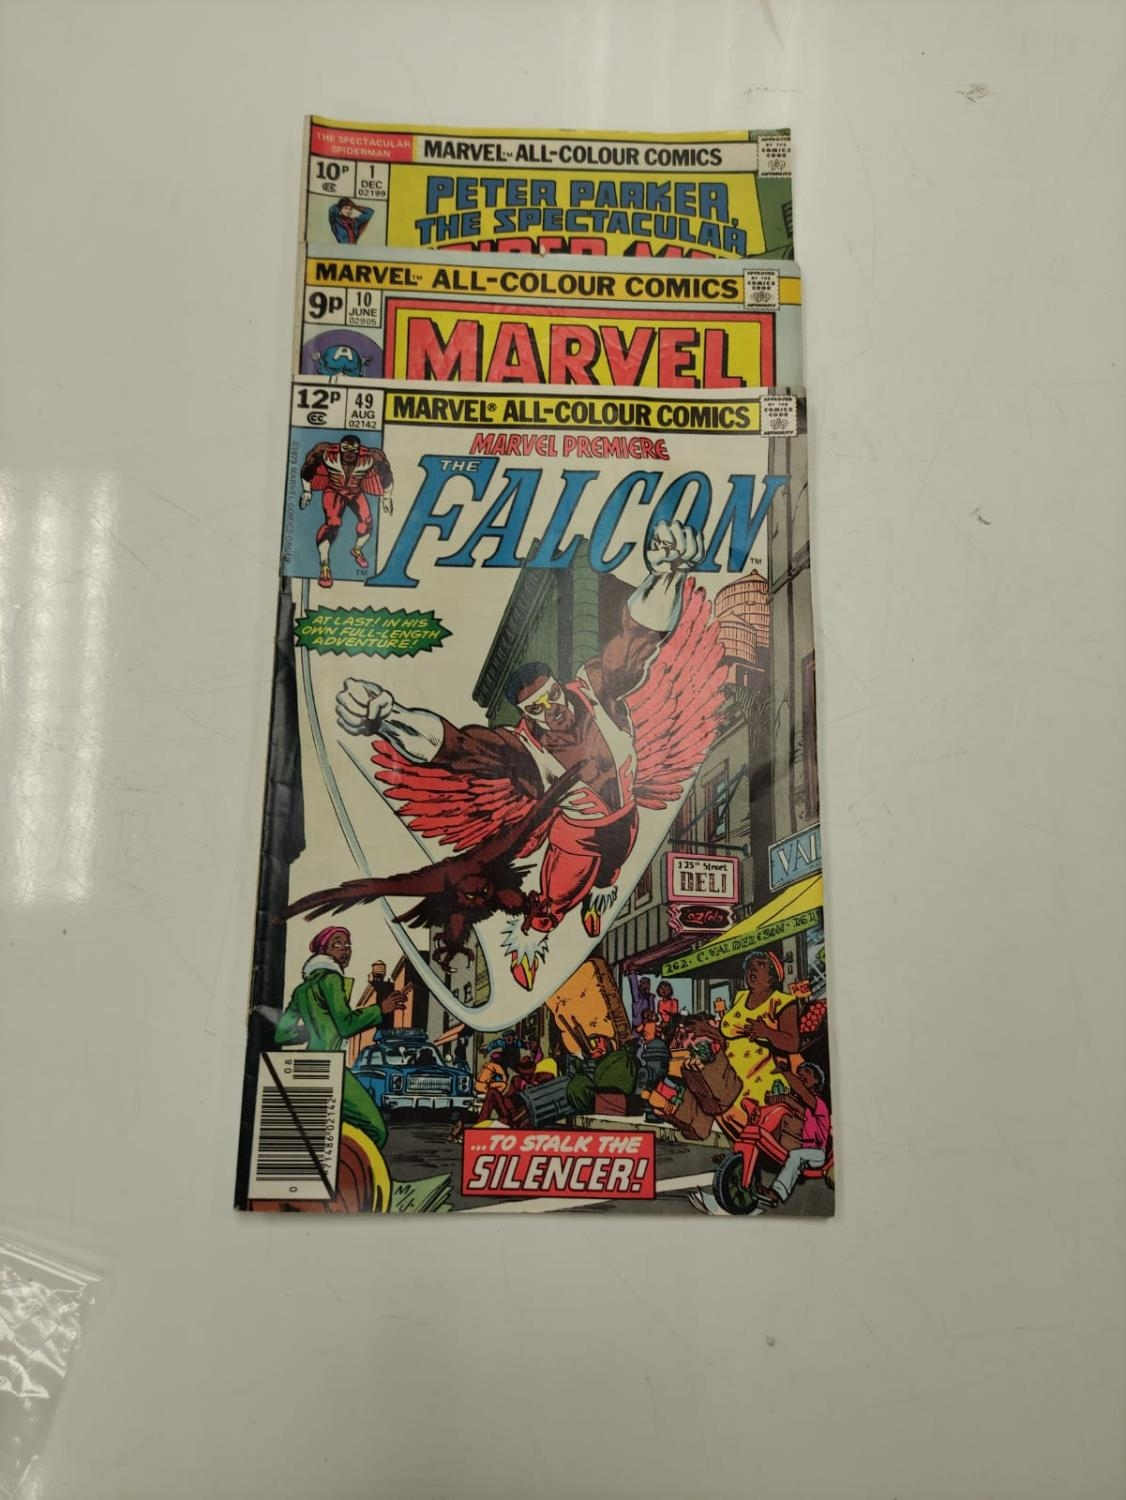 3 Eclectic Vintage Marvel Comics, including the rare 'Peter Parker, The Spectacular Spider-Man'. - Image 8 of 8